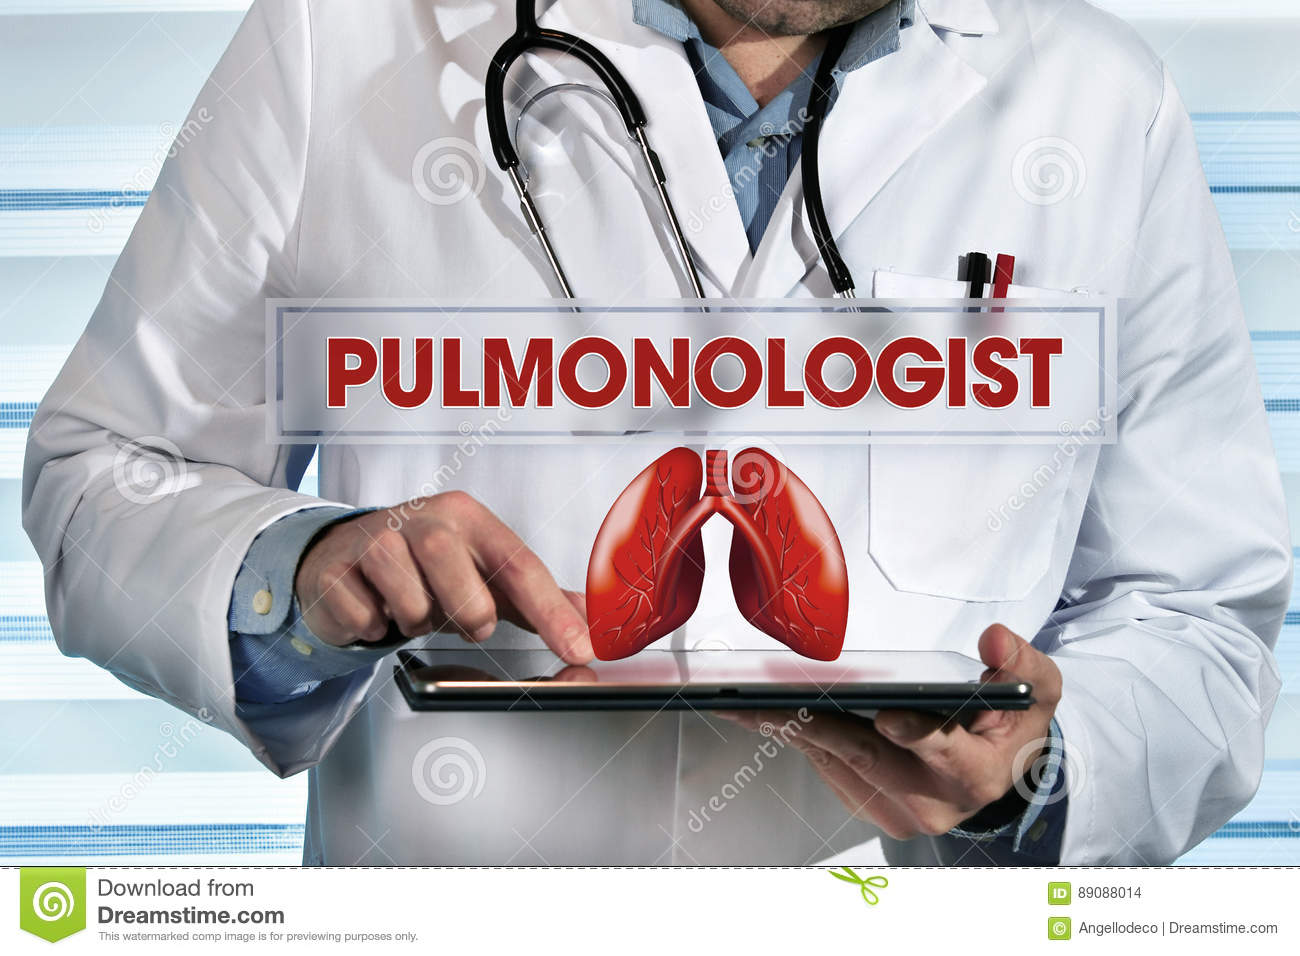 Pulmonologist working with tablet in hands in the lab with text